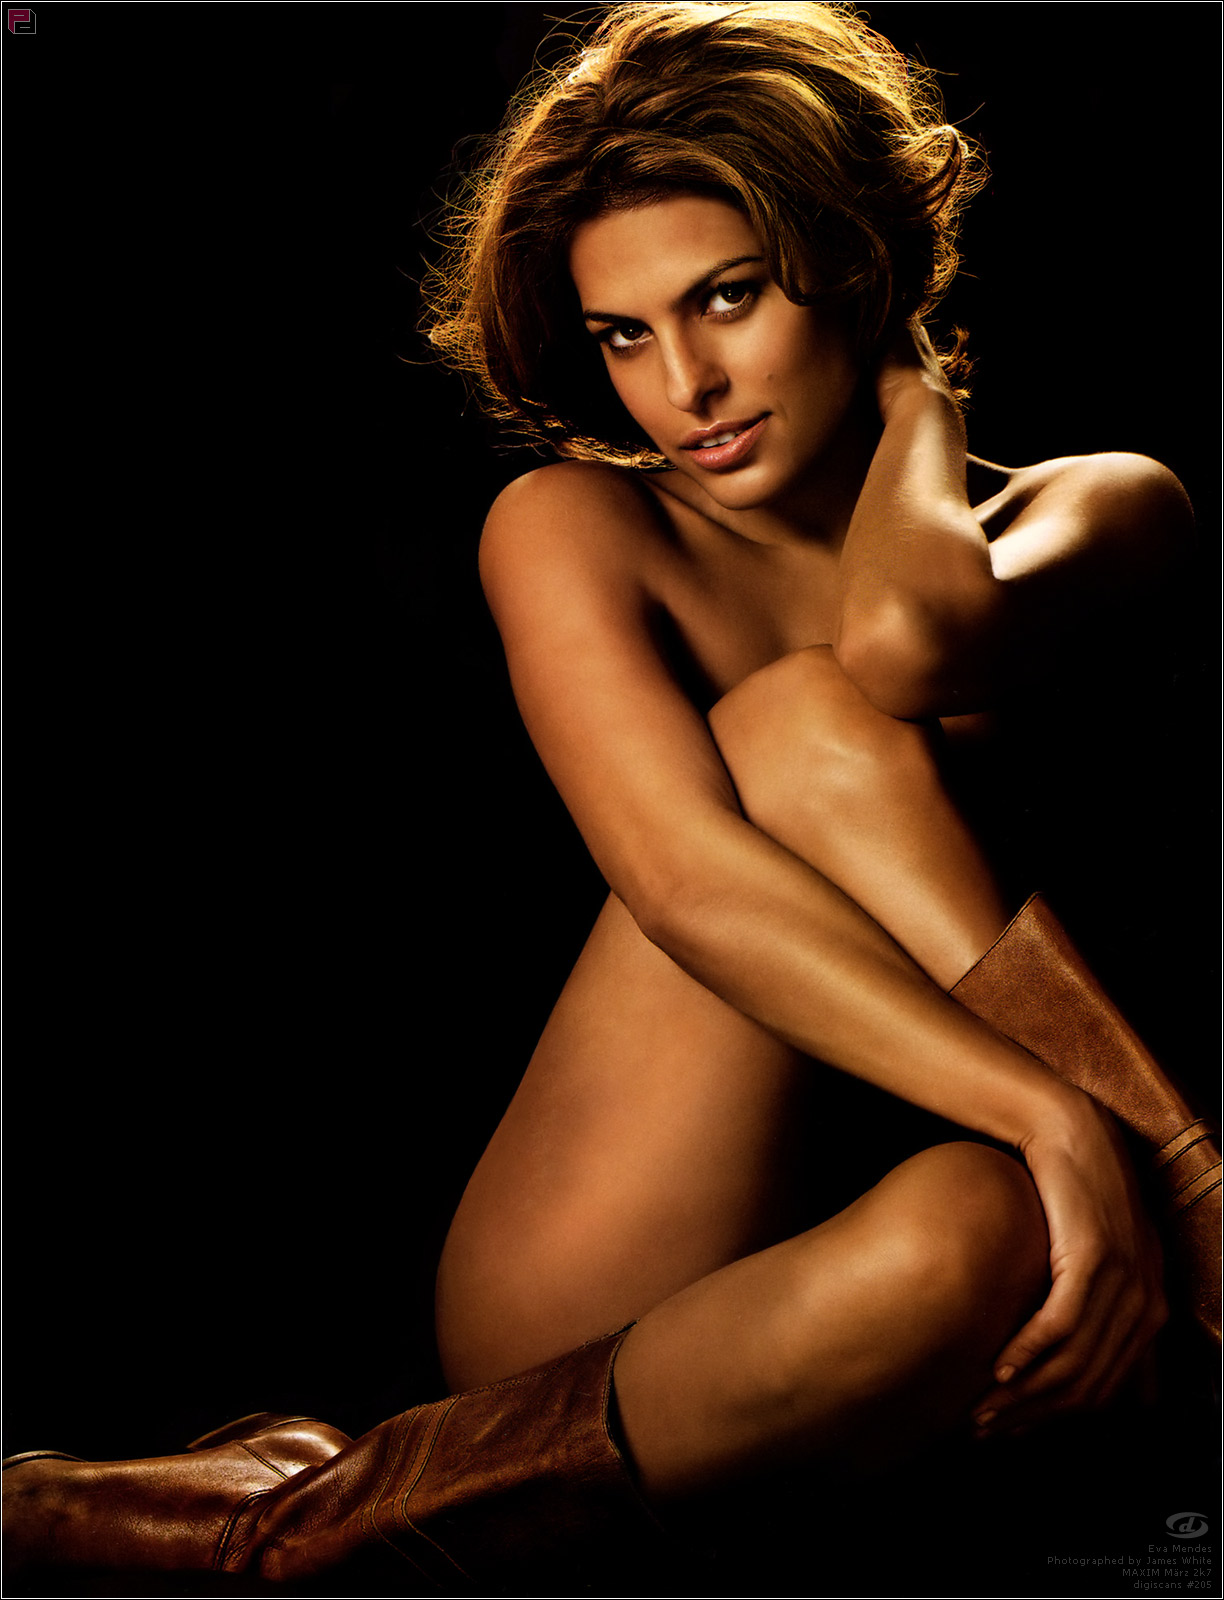 Eva mendes nude scene in the spirit movie scandalplanetcom 9